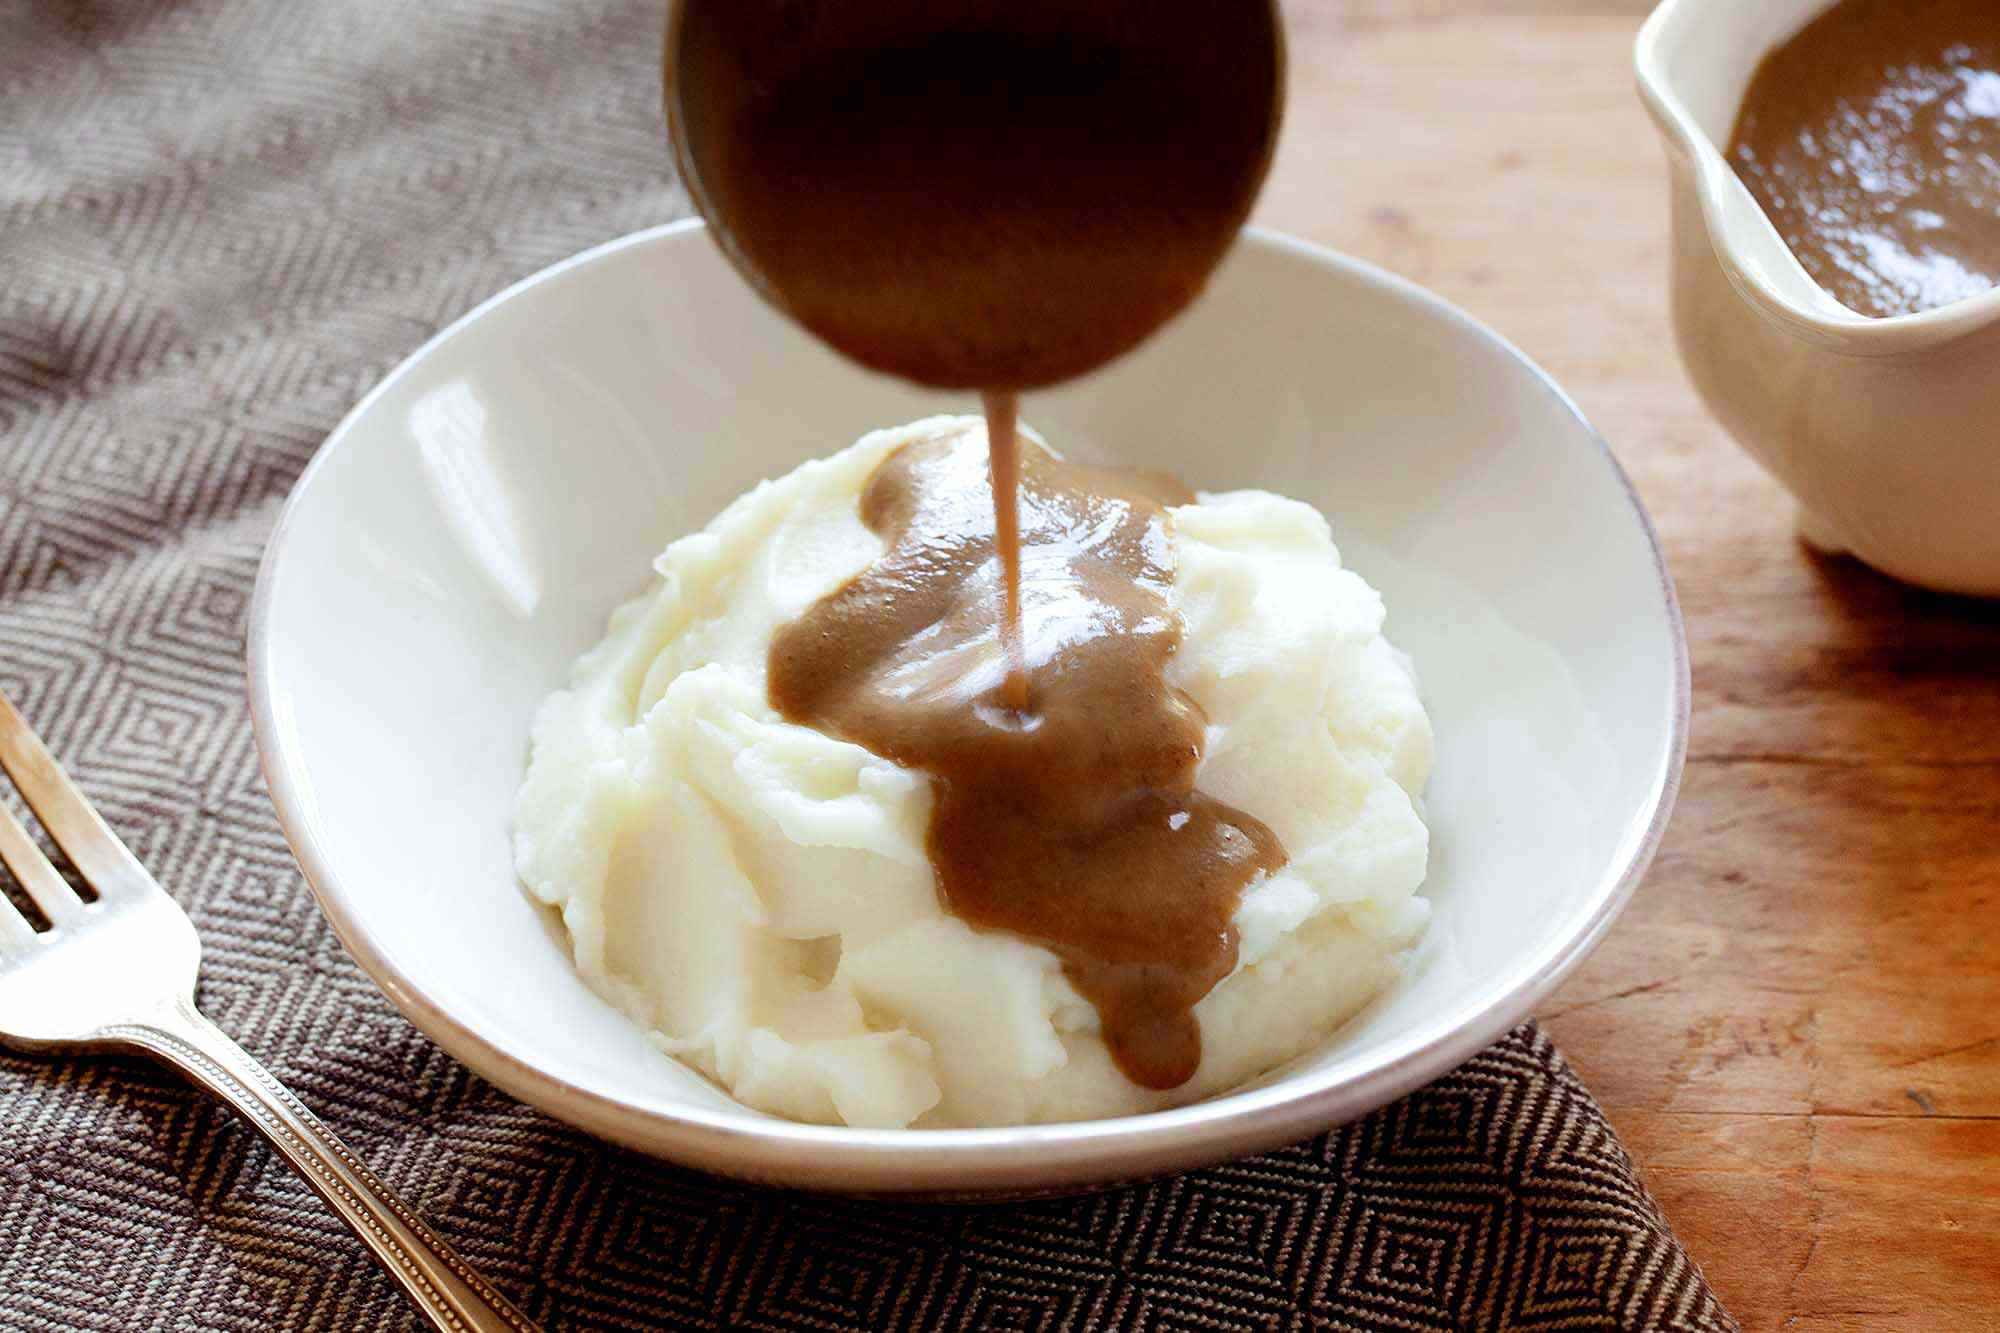 Easy Vegan mushroom gravy poured over a pile of mashed potatoes on a white bowl.